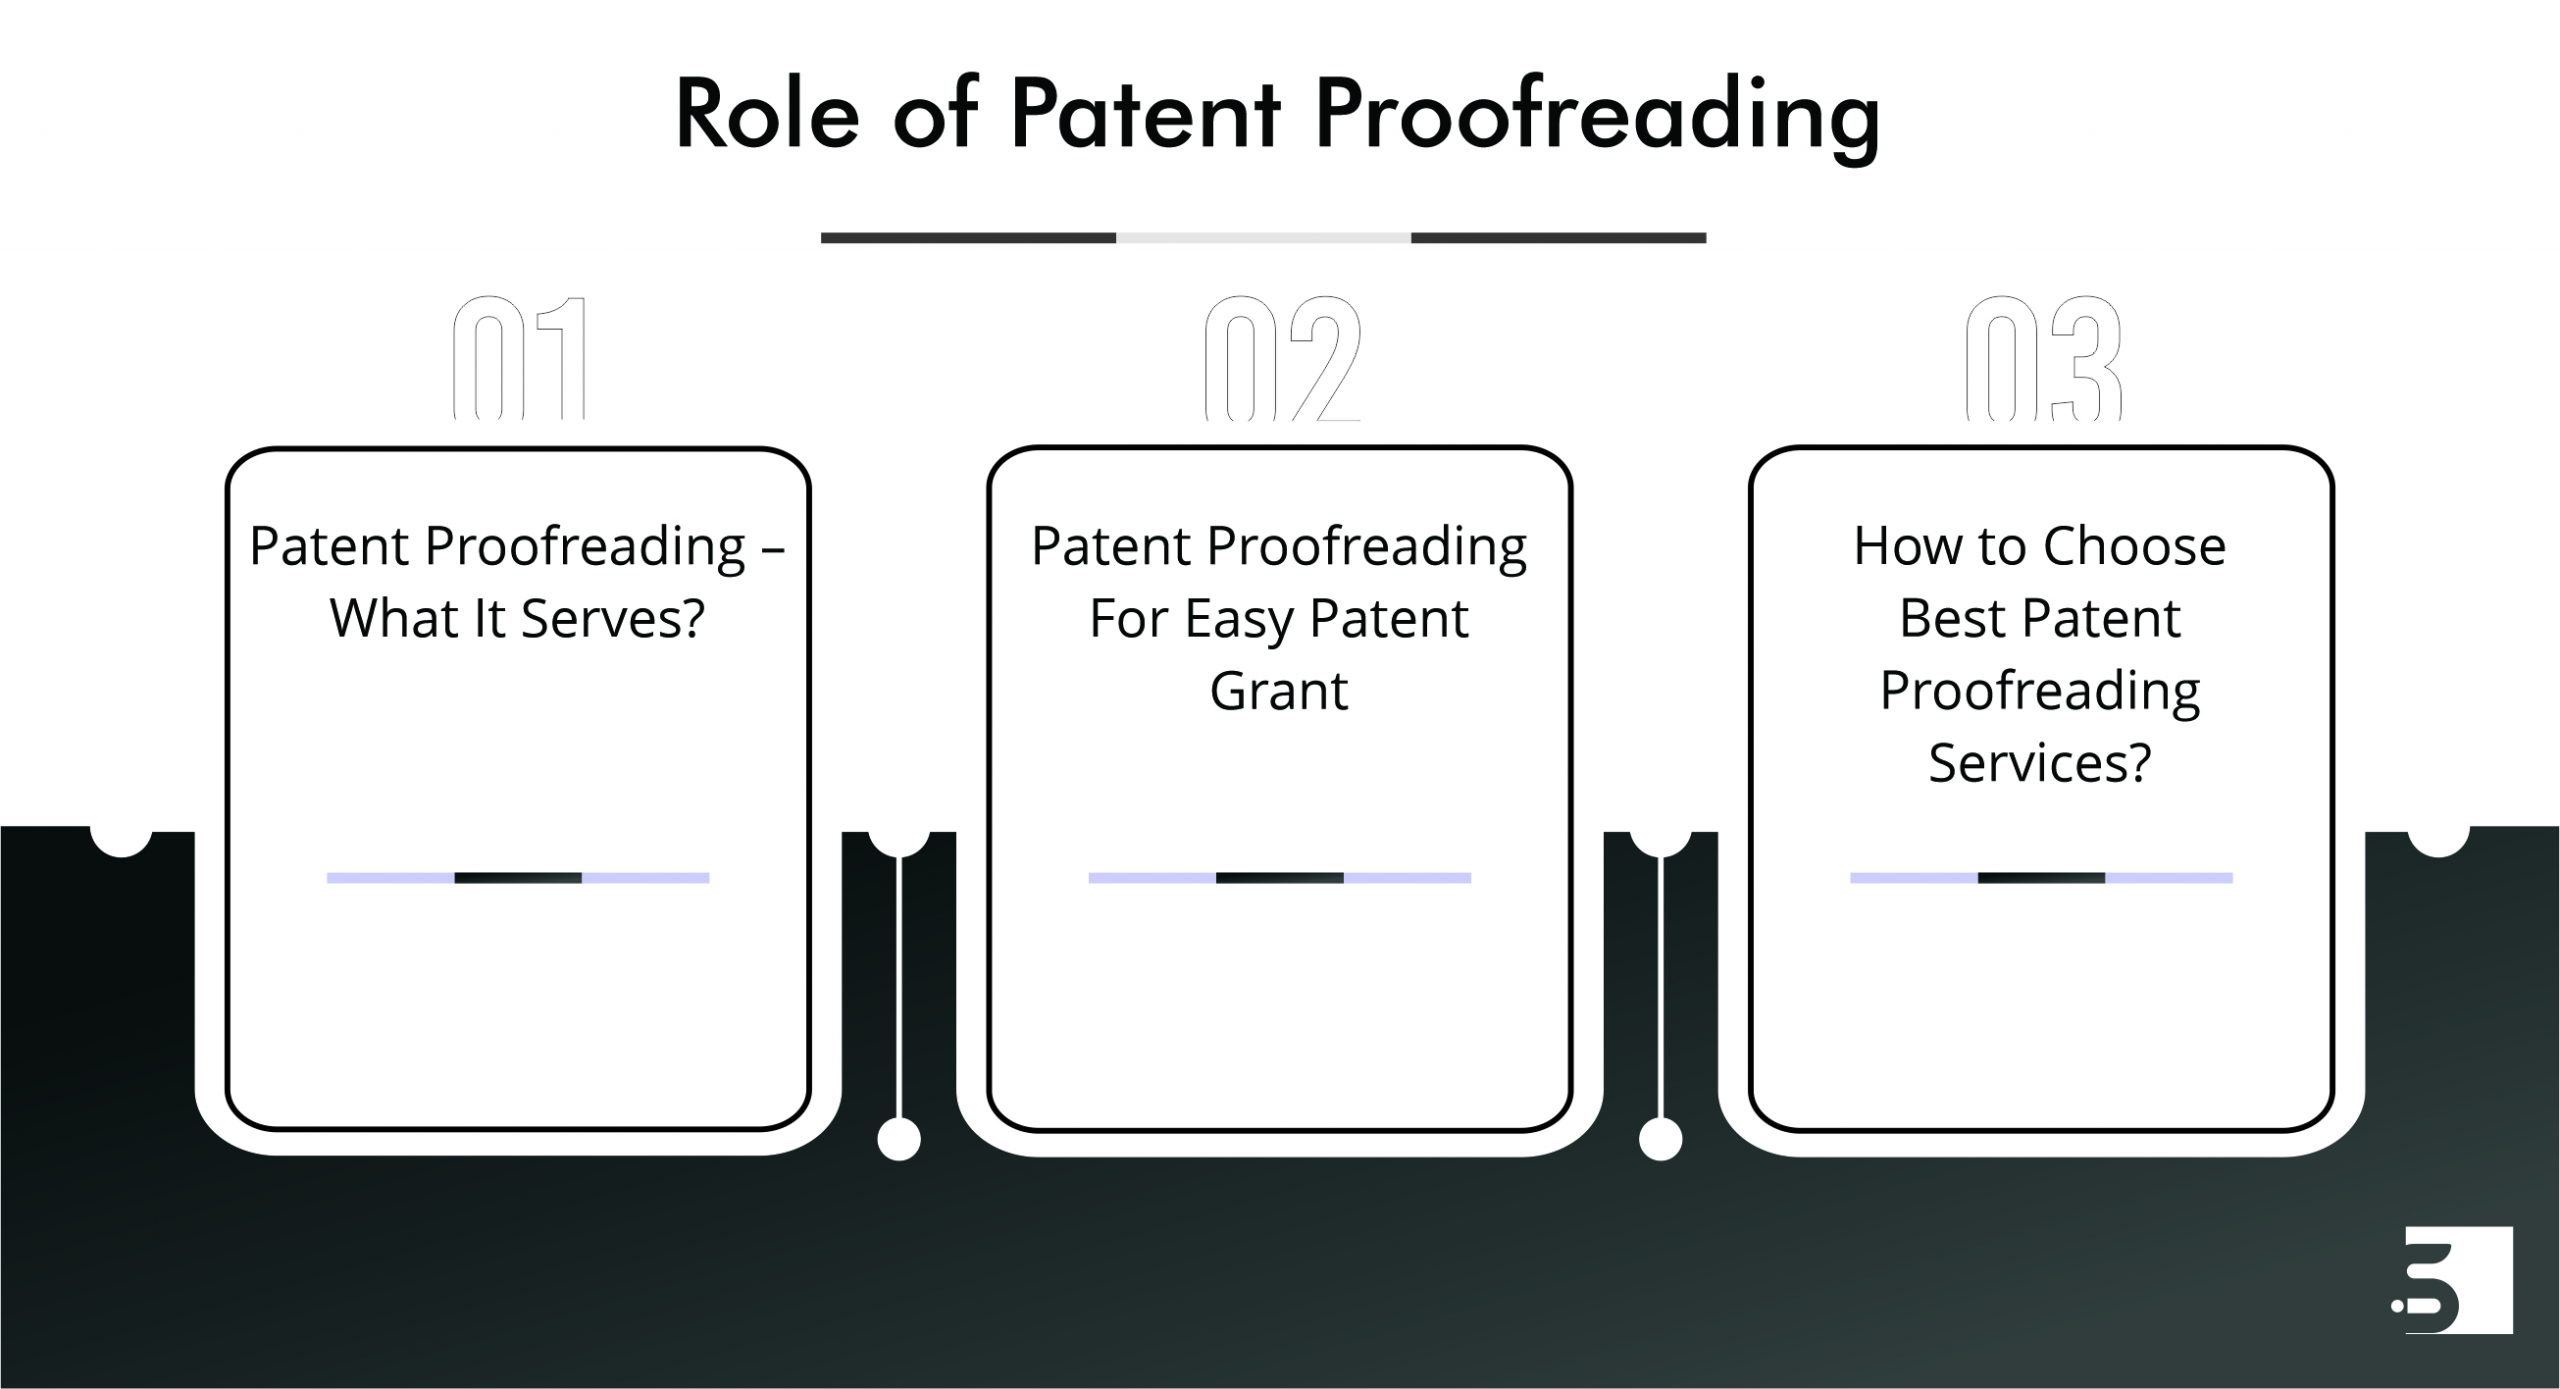 ROLE OF PATENT PROOFREADING